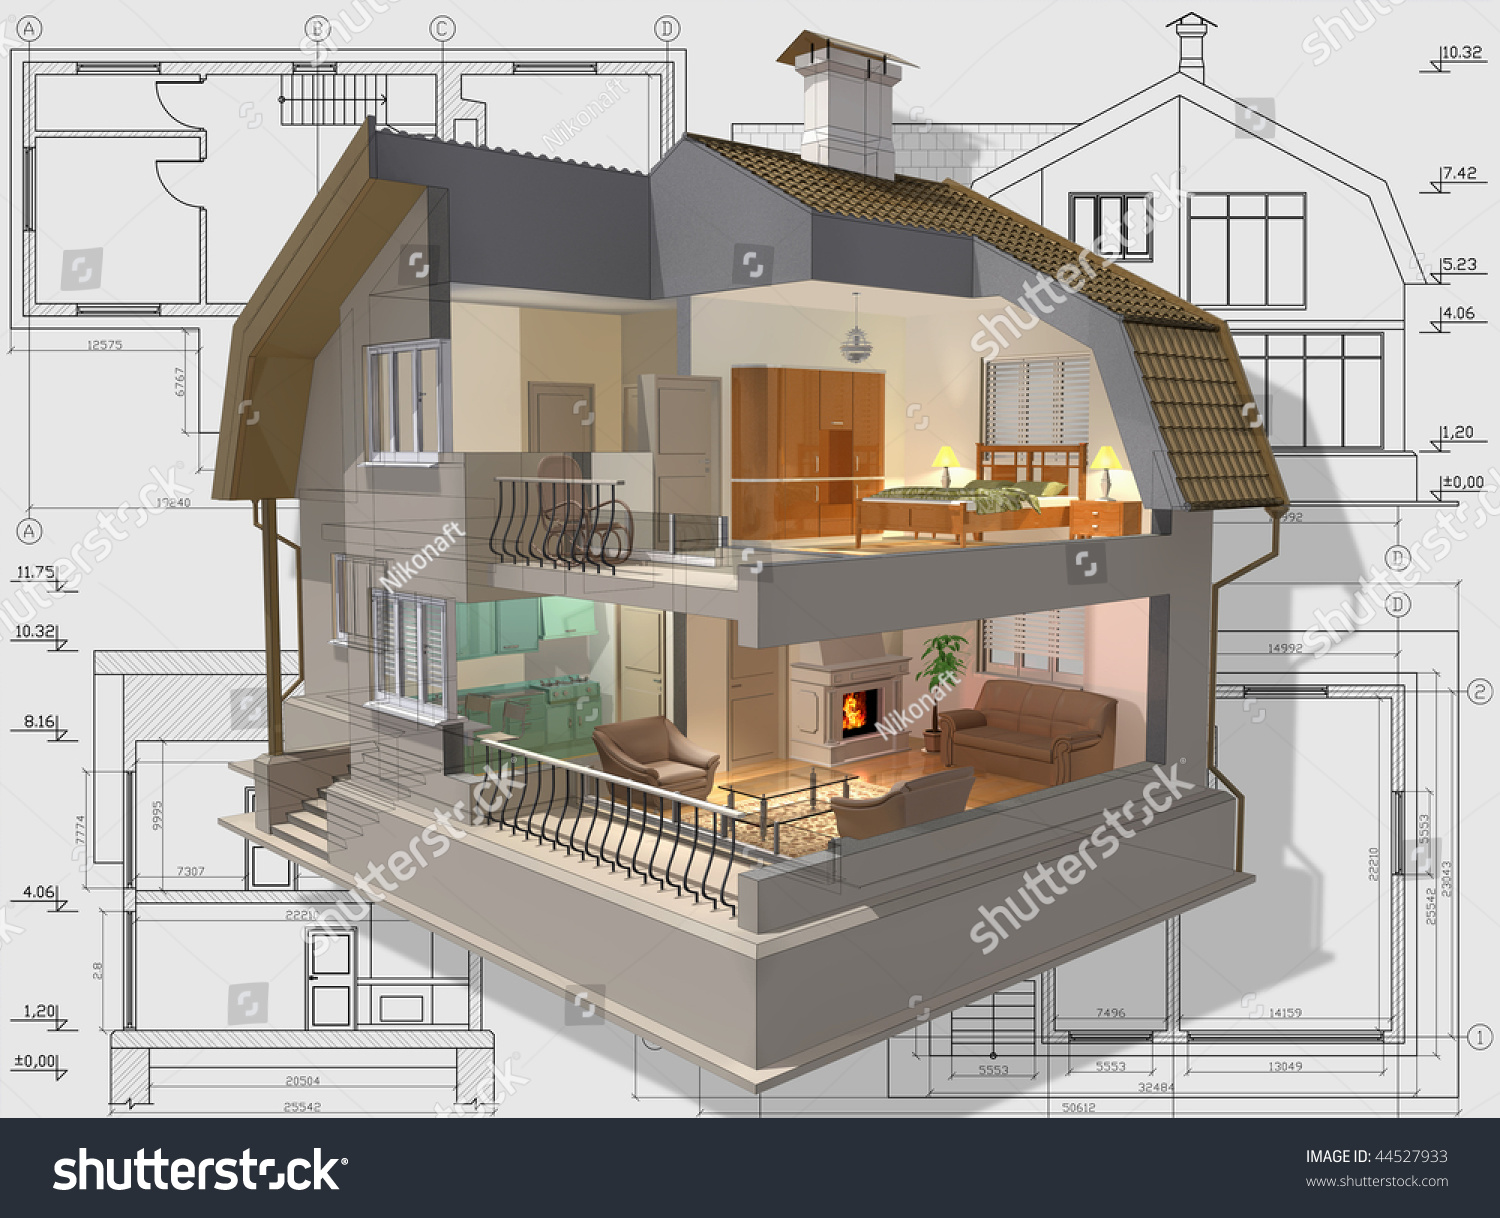 isometric view of house